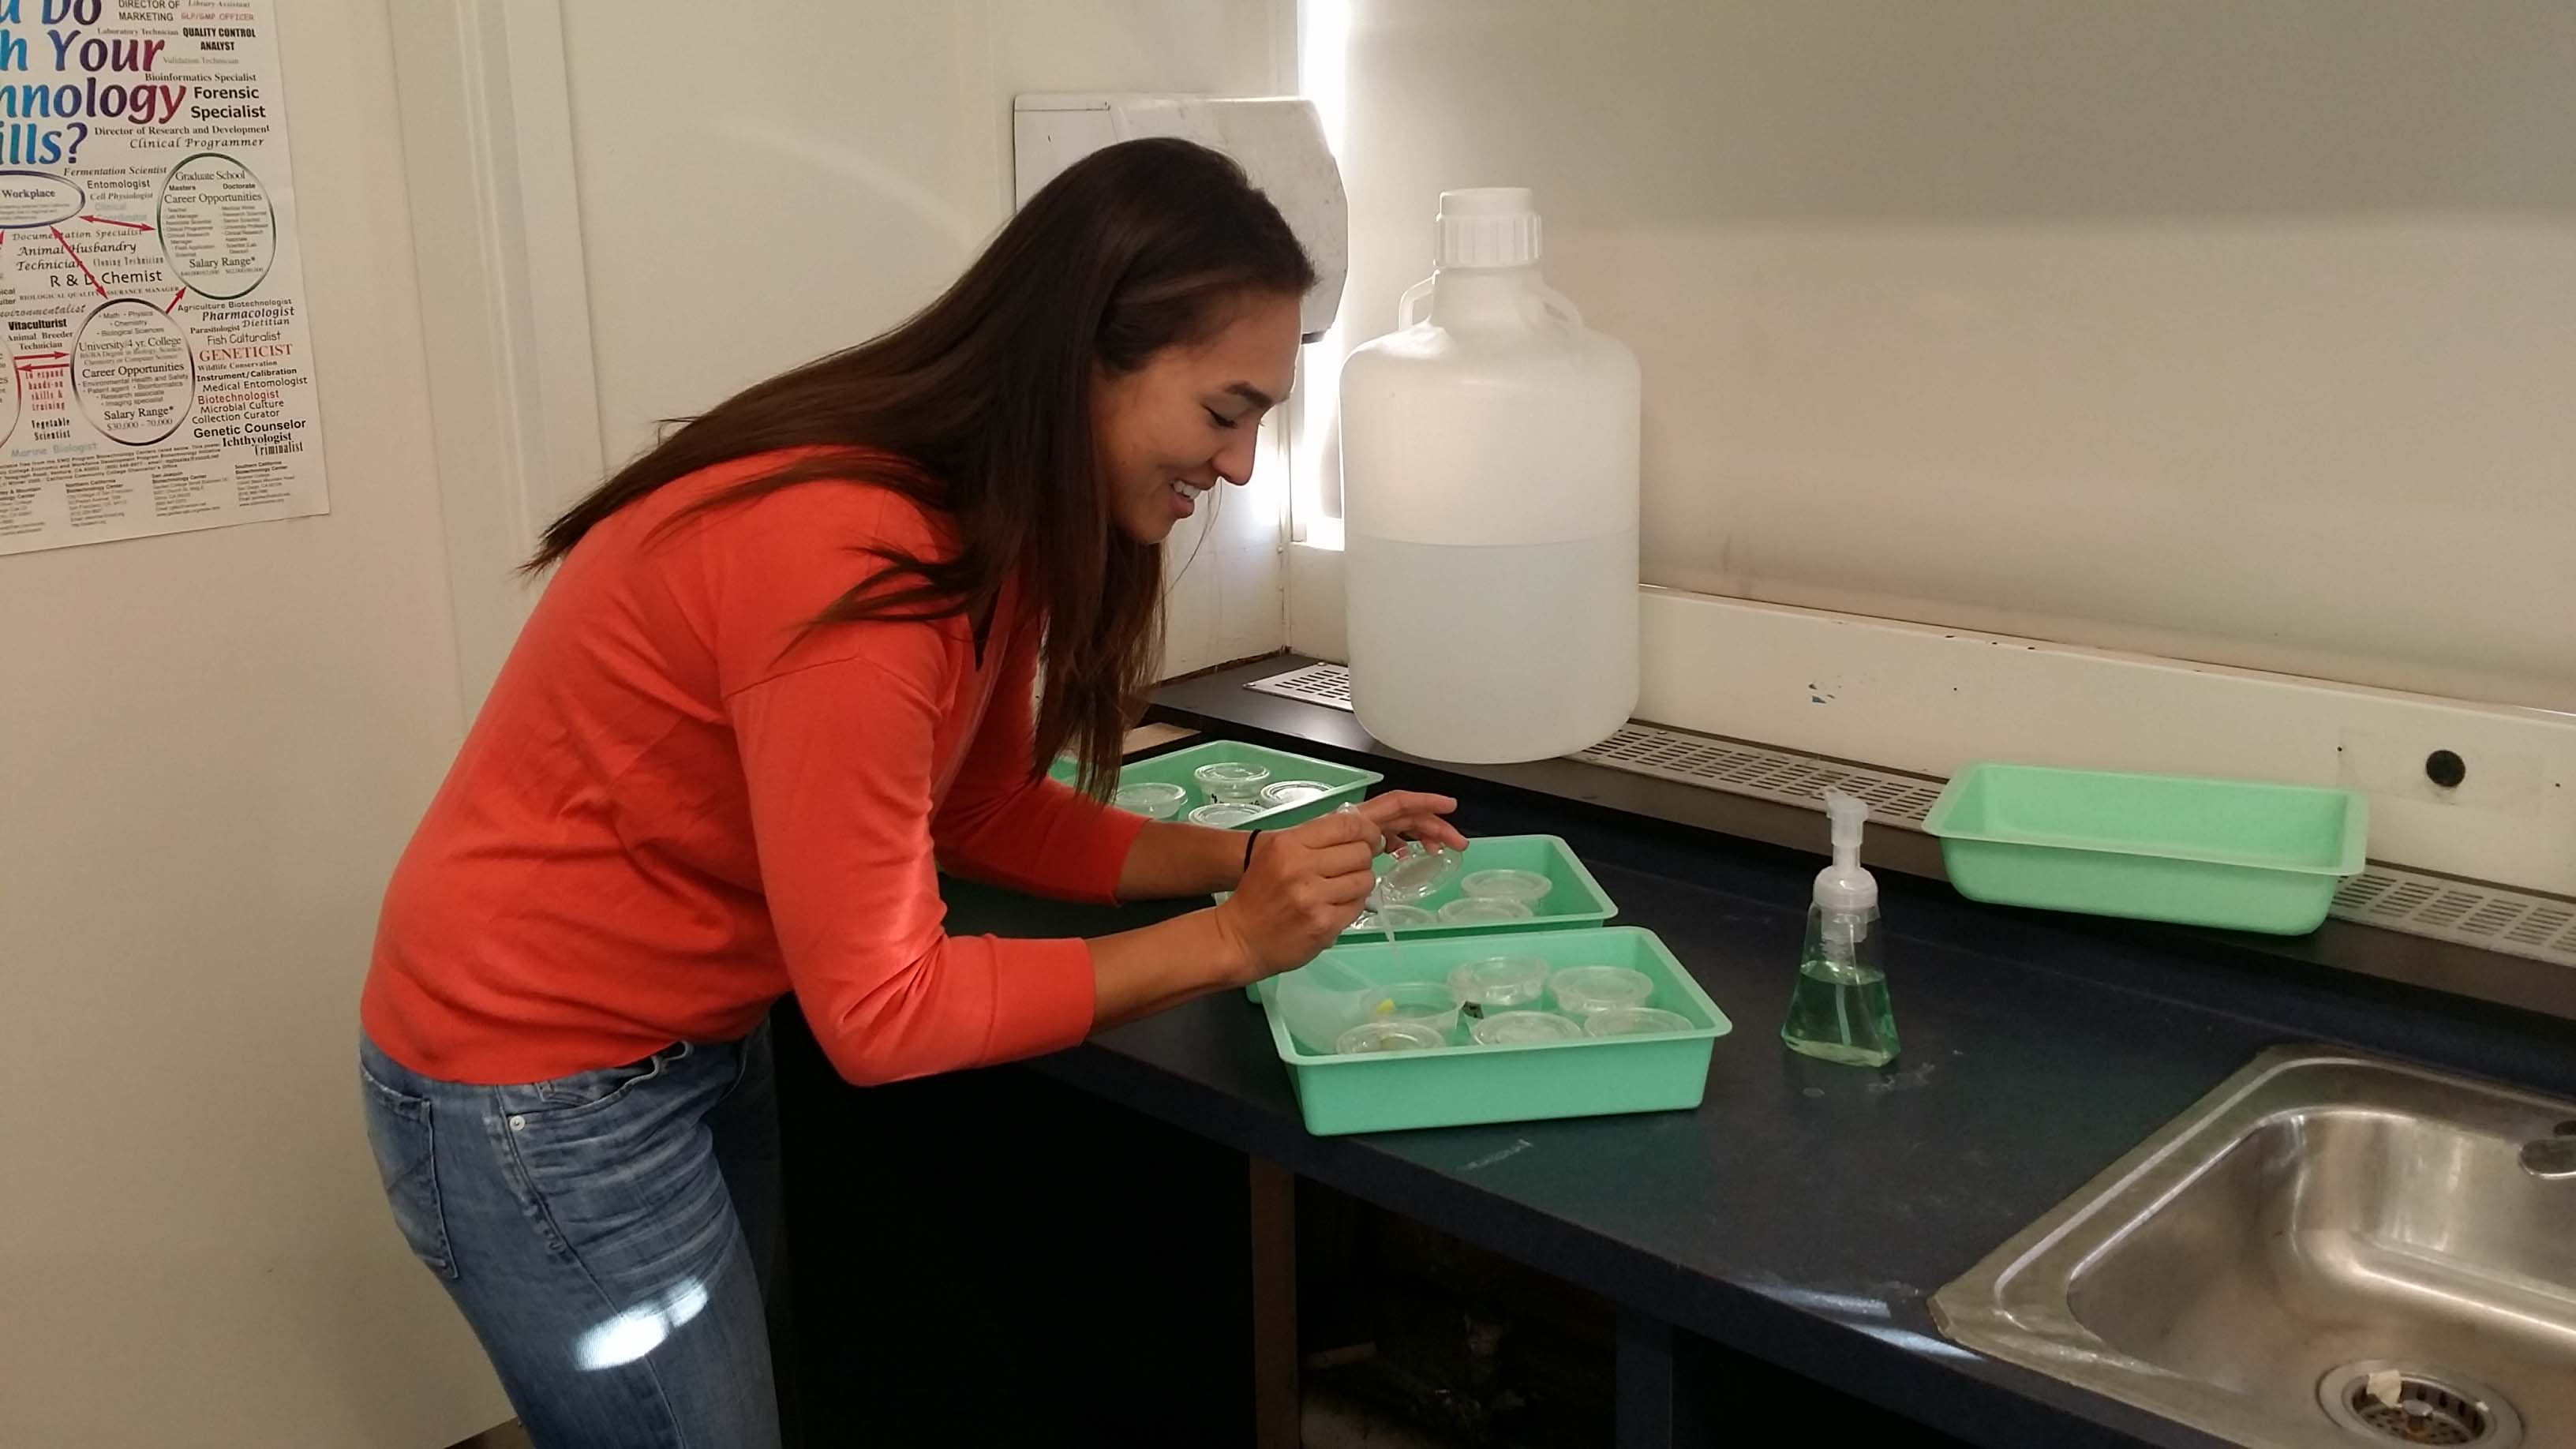 Alumni Stephanie Weden cleans up Biology materials at the end of her first period class.